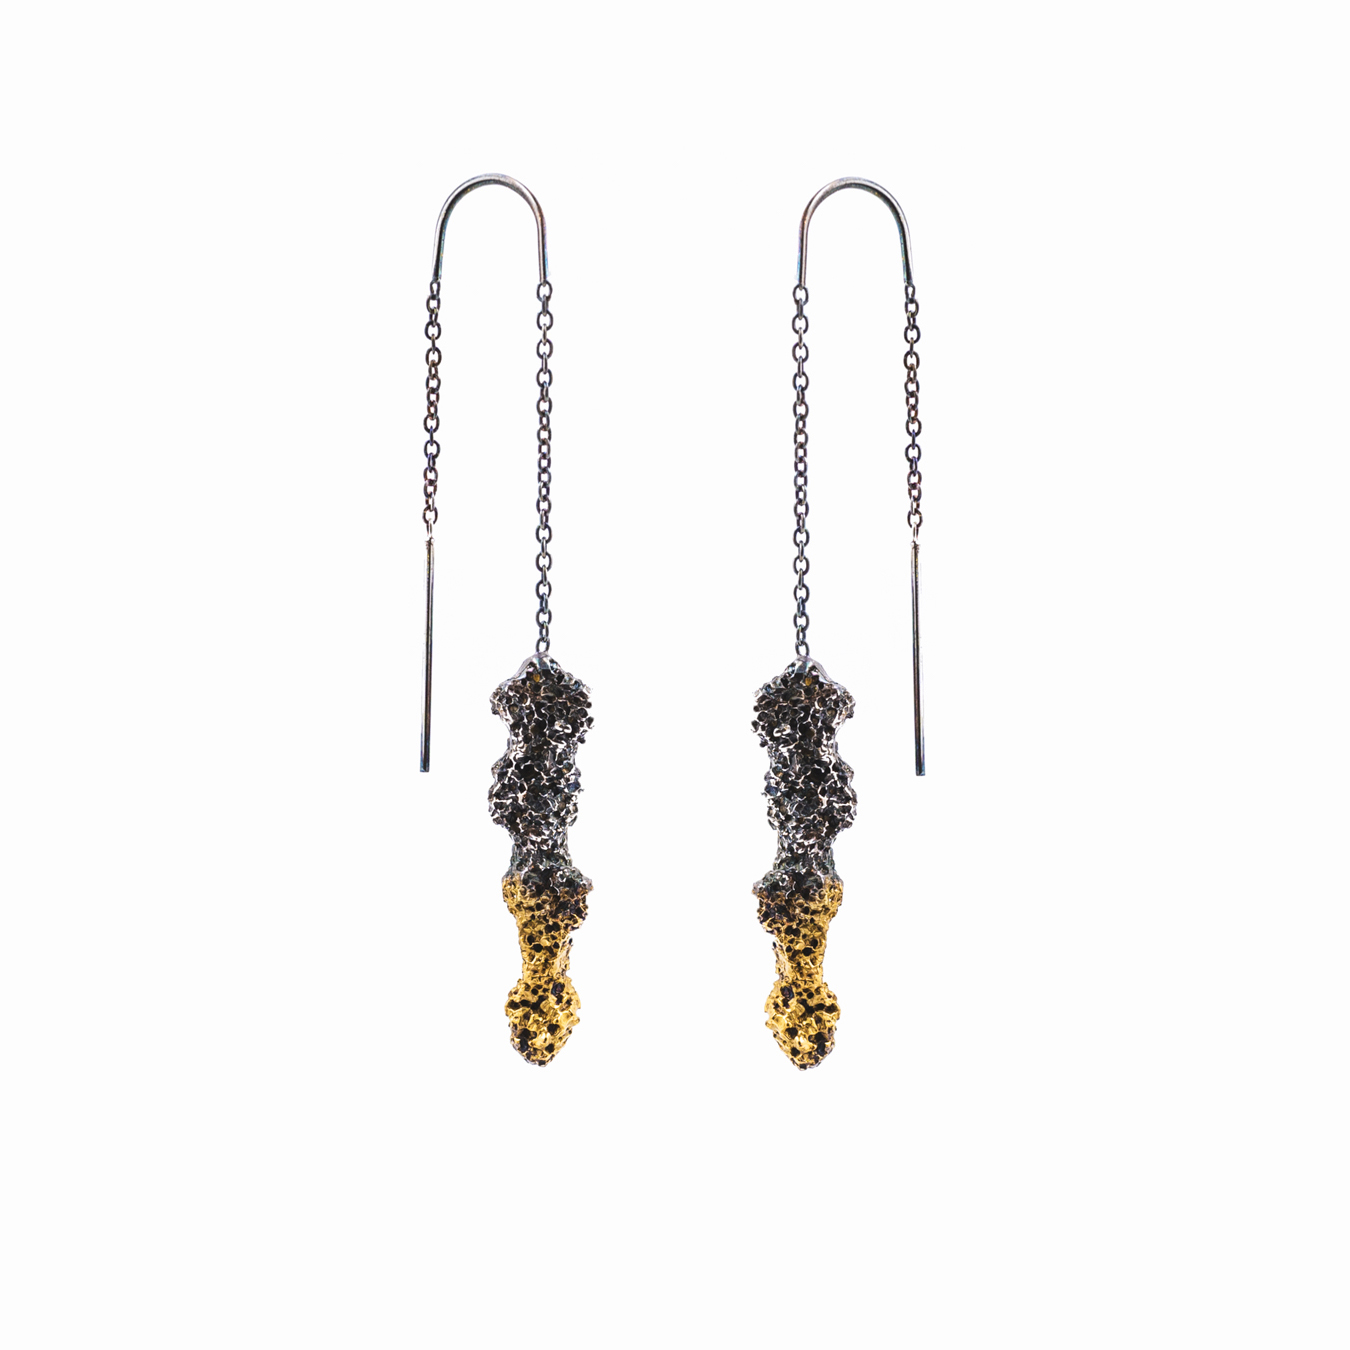 Graceful Inner Island / Spire Earrings : Sterling silver, gold vermeil, patina